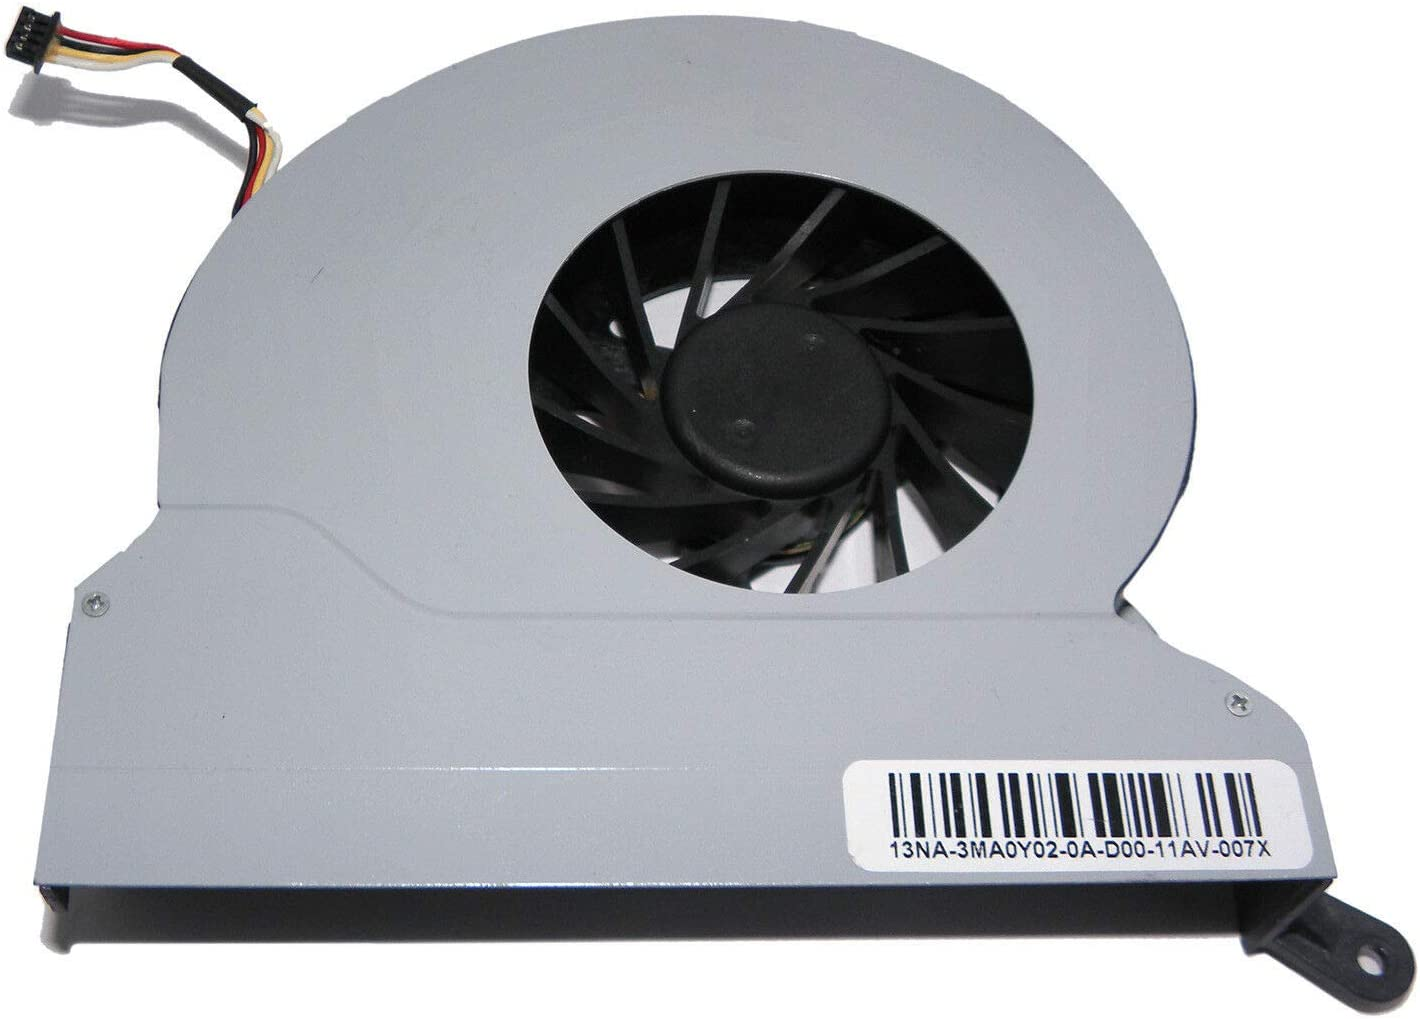 CPU Cooling Fan for HP G1-2000 CQ1-2000 100B MS200